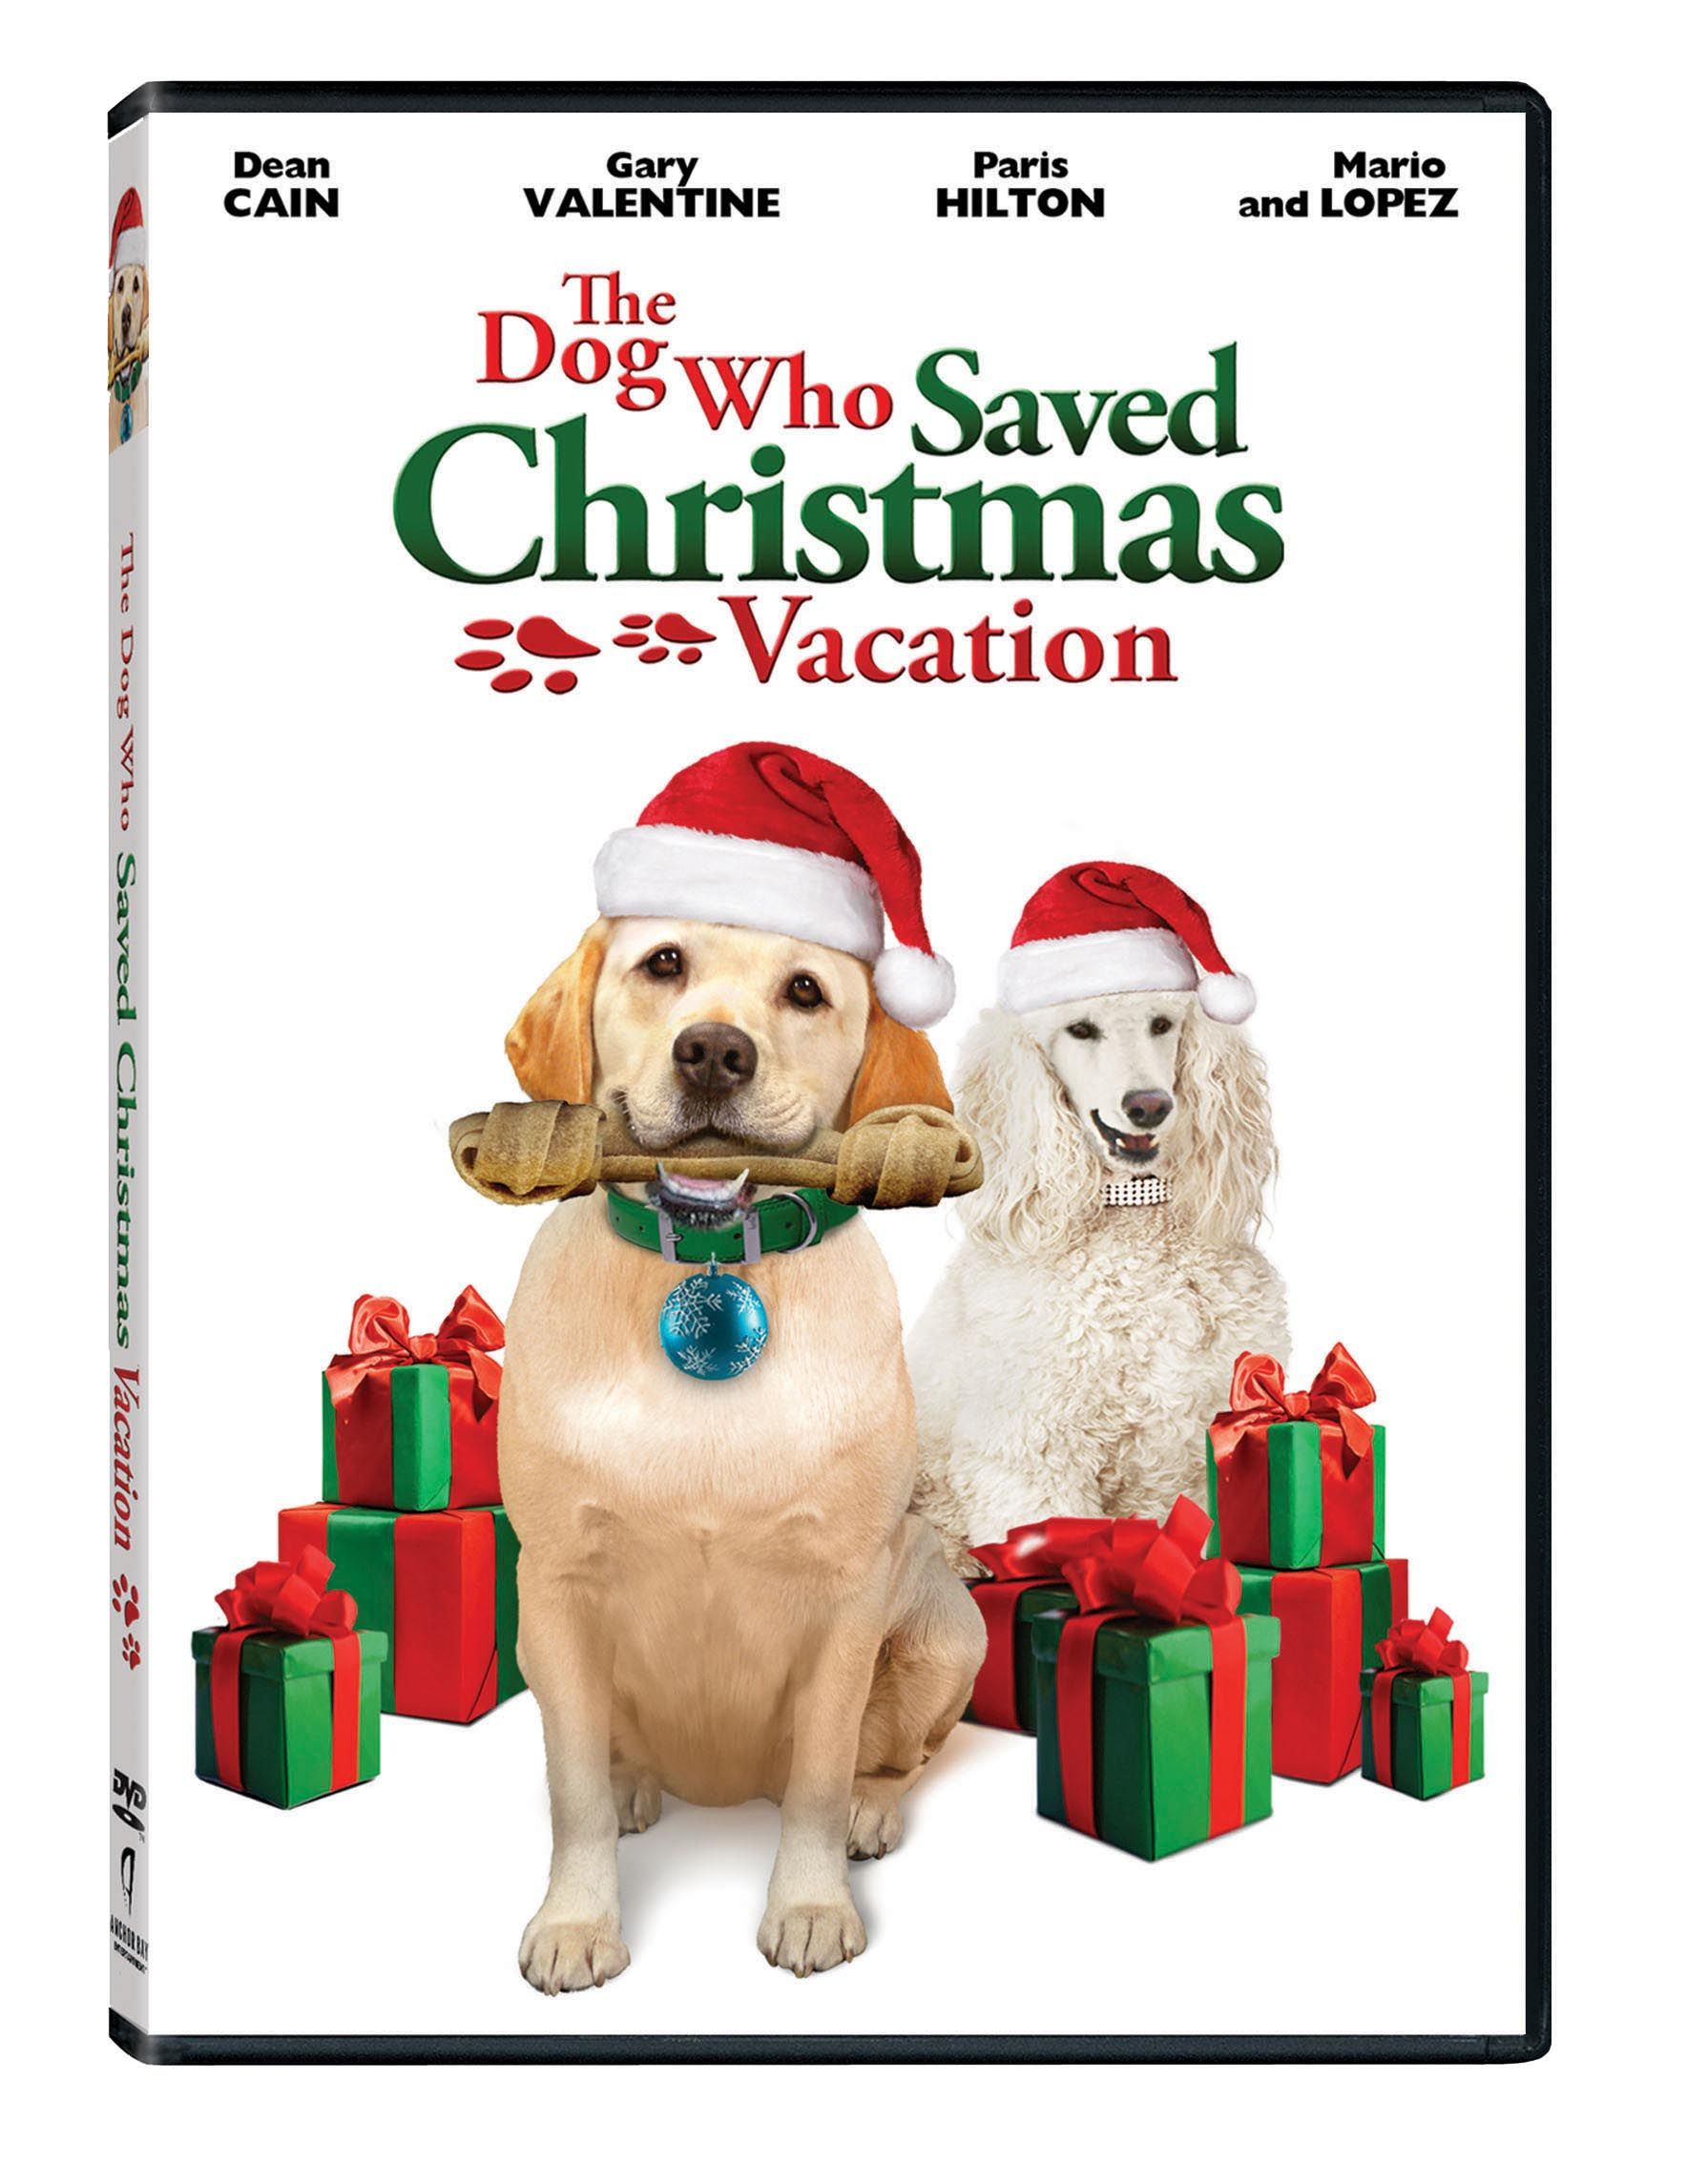 christmas movies | Movies | Pinterest | Weihnachtsfilme, Filme and Jungs